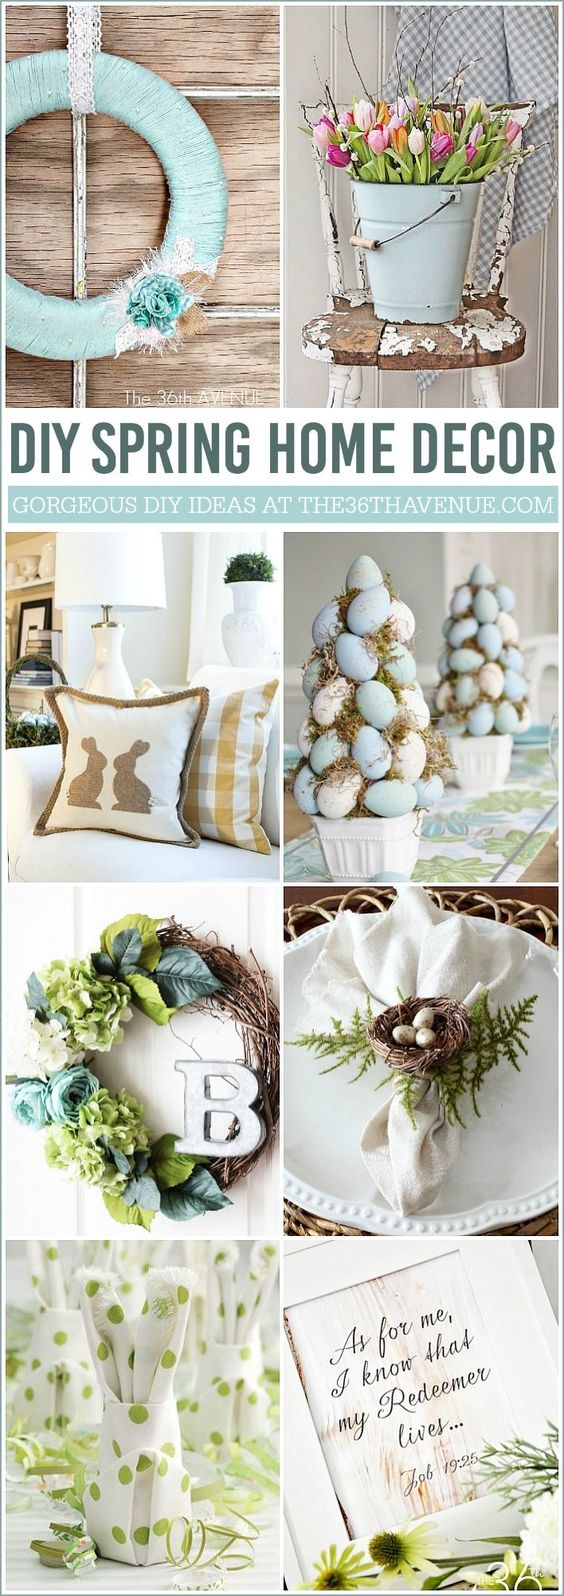 DIY Easter Home Decor Ideas - Beautiful Spring Home Decor Ideas that you can make at home!: